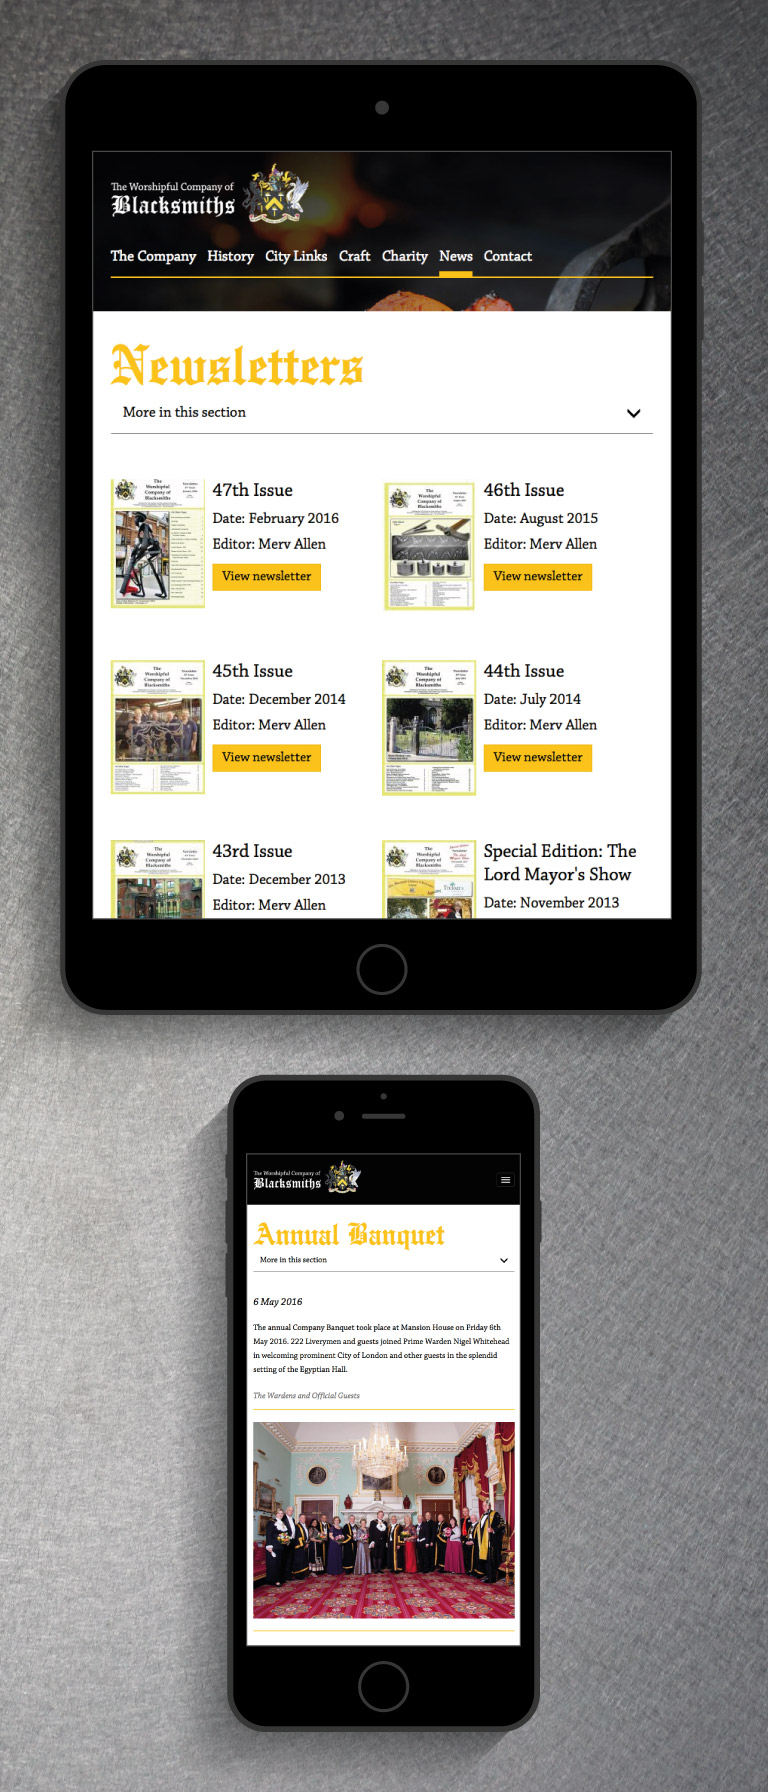 The Worshipful Company of Blacksmiths website on an iPad and iPhone - mobile